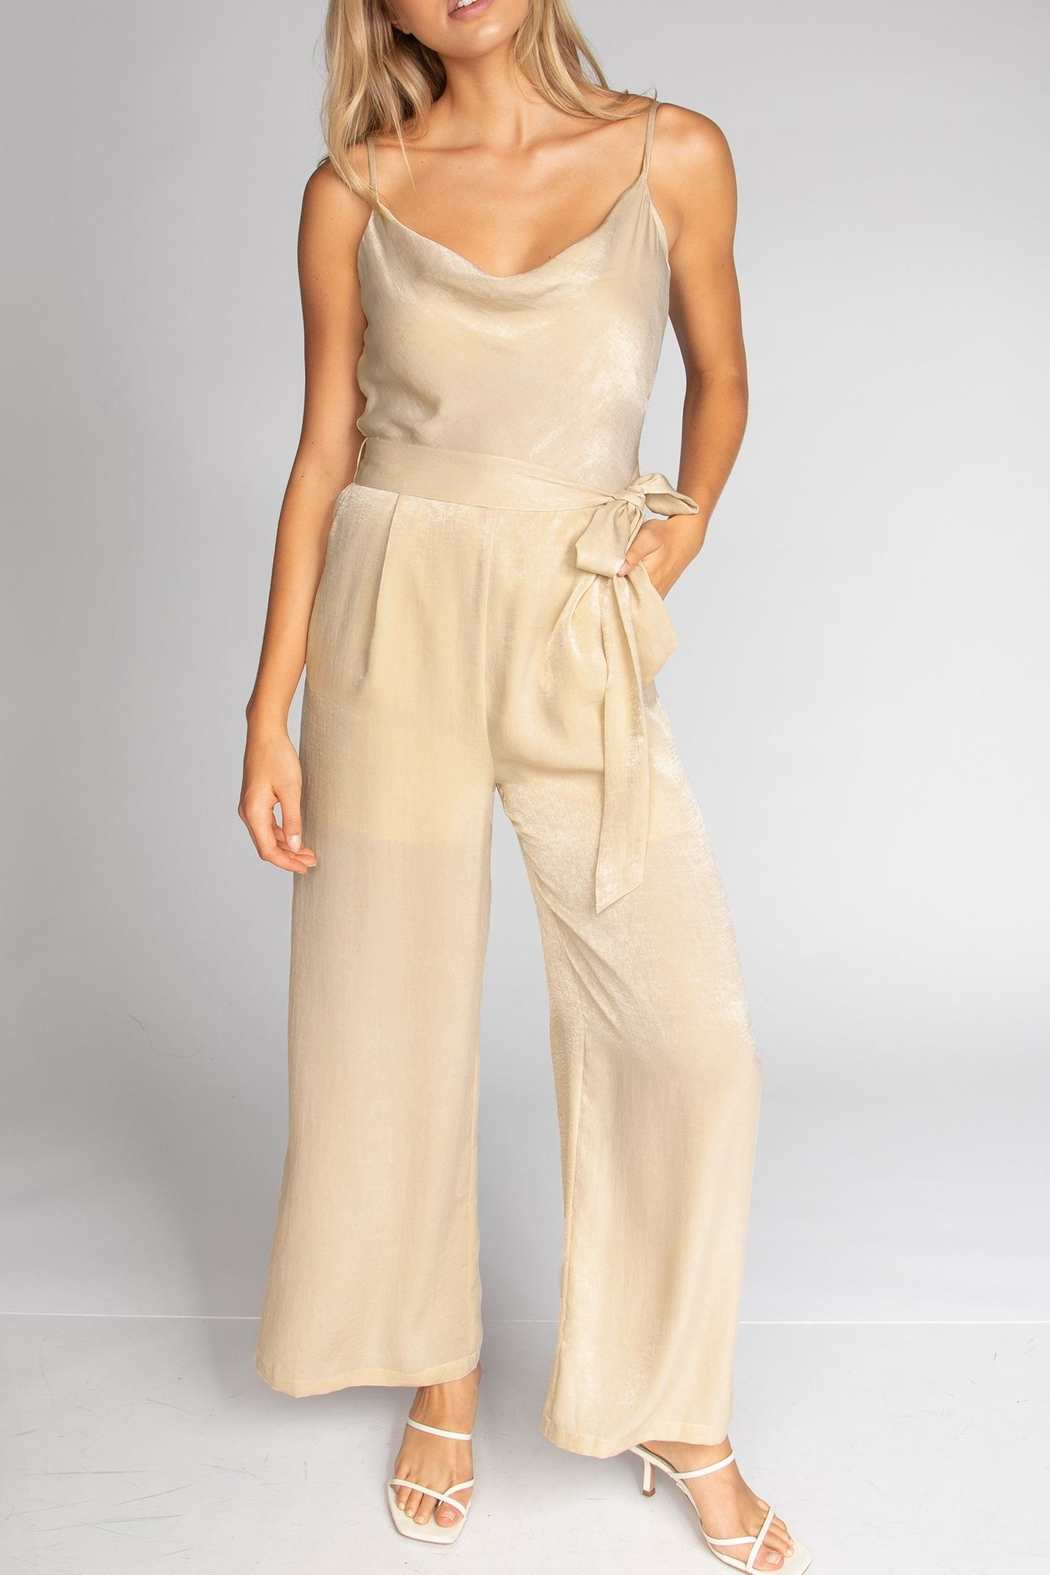 Cattiva Girl Strappy Cowl Jumpsuit - Main Image